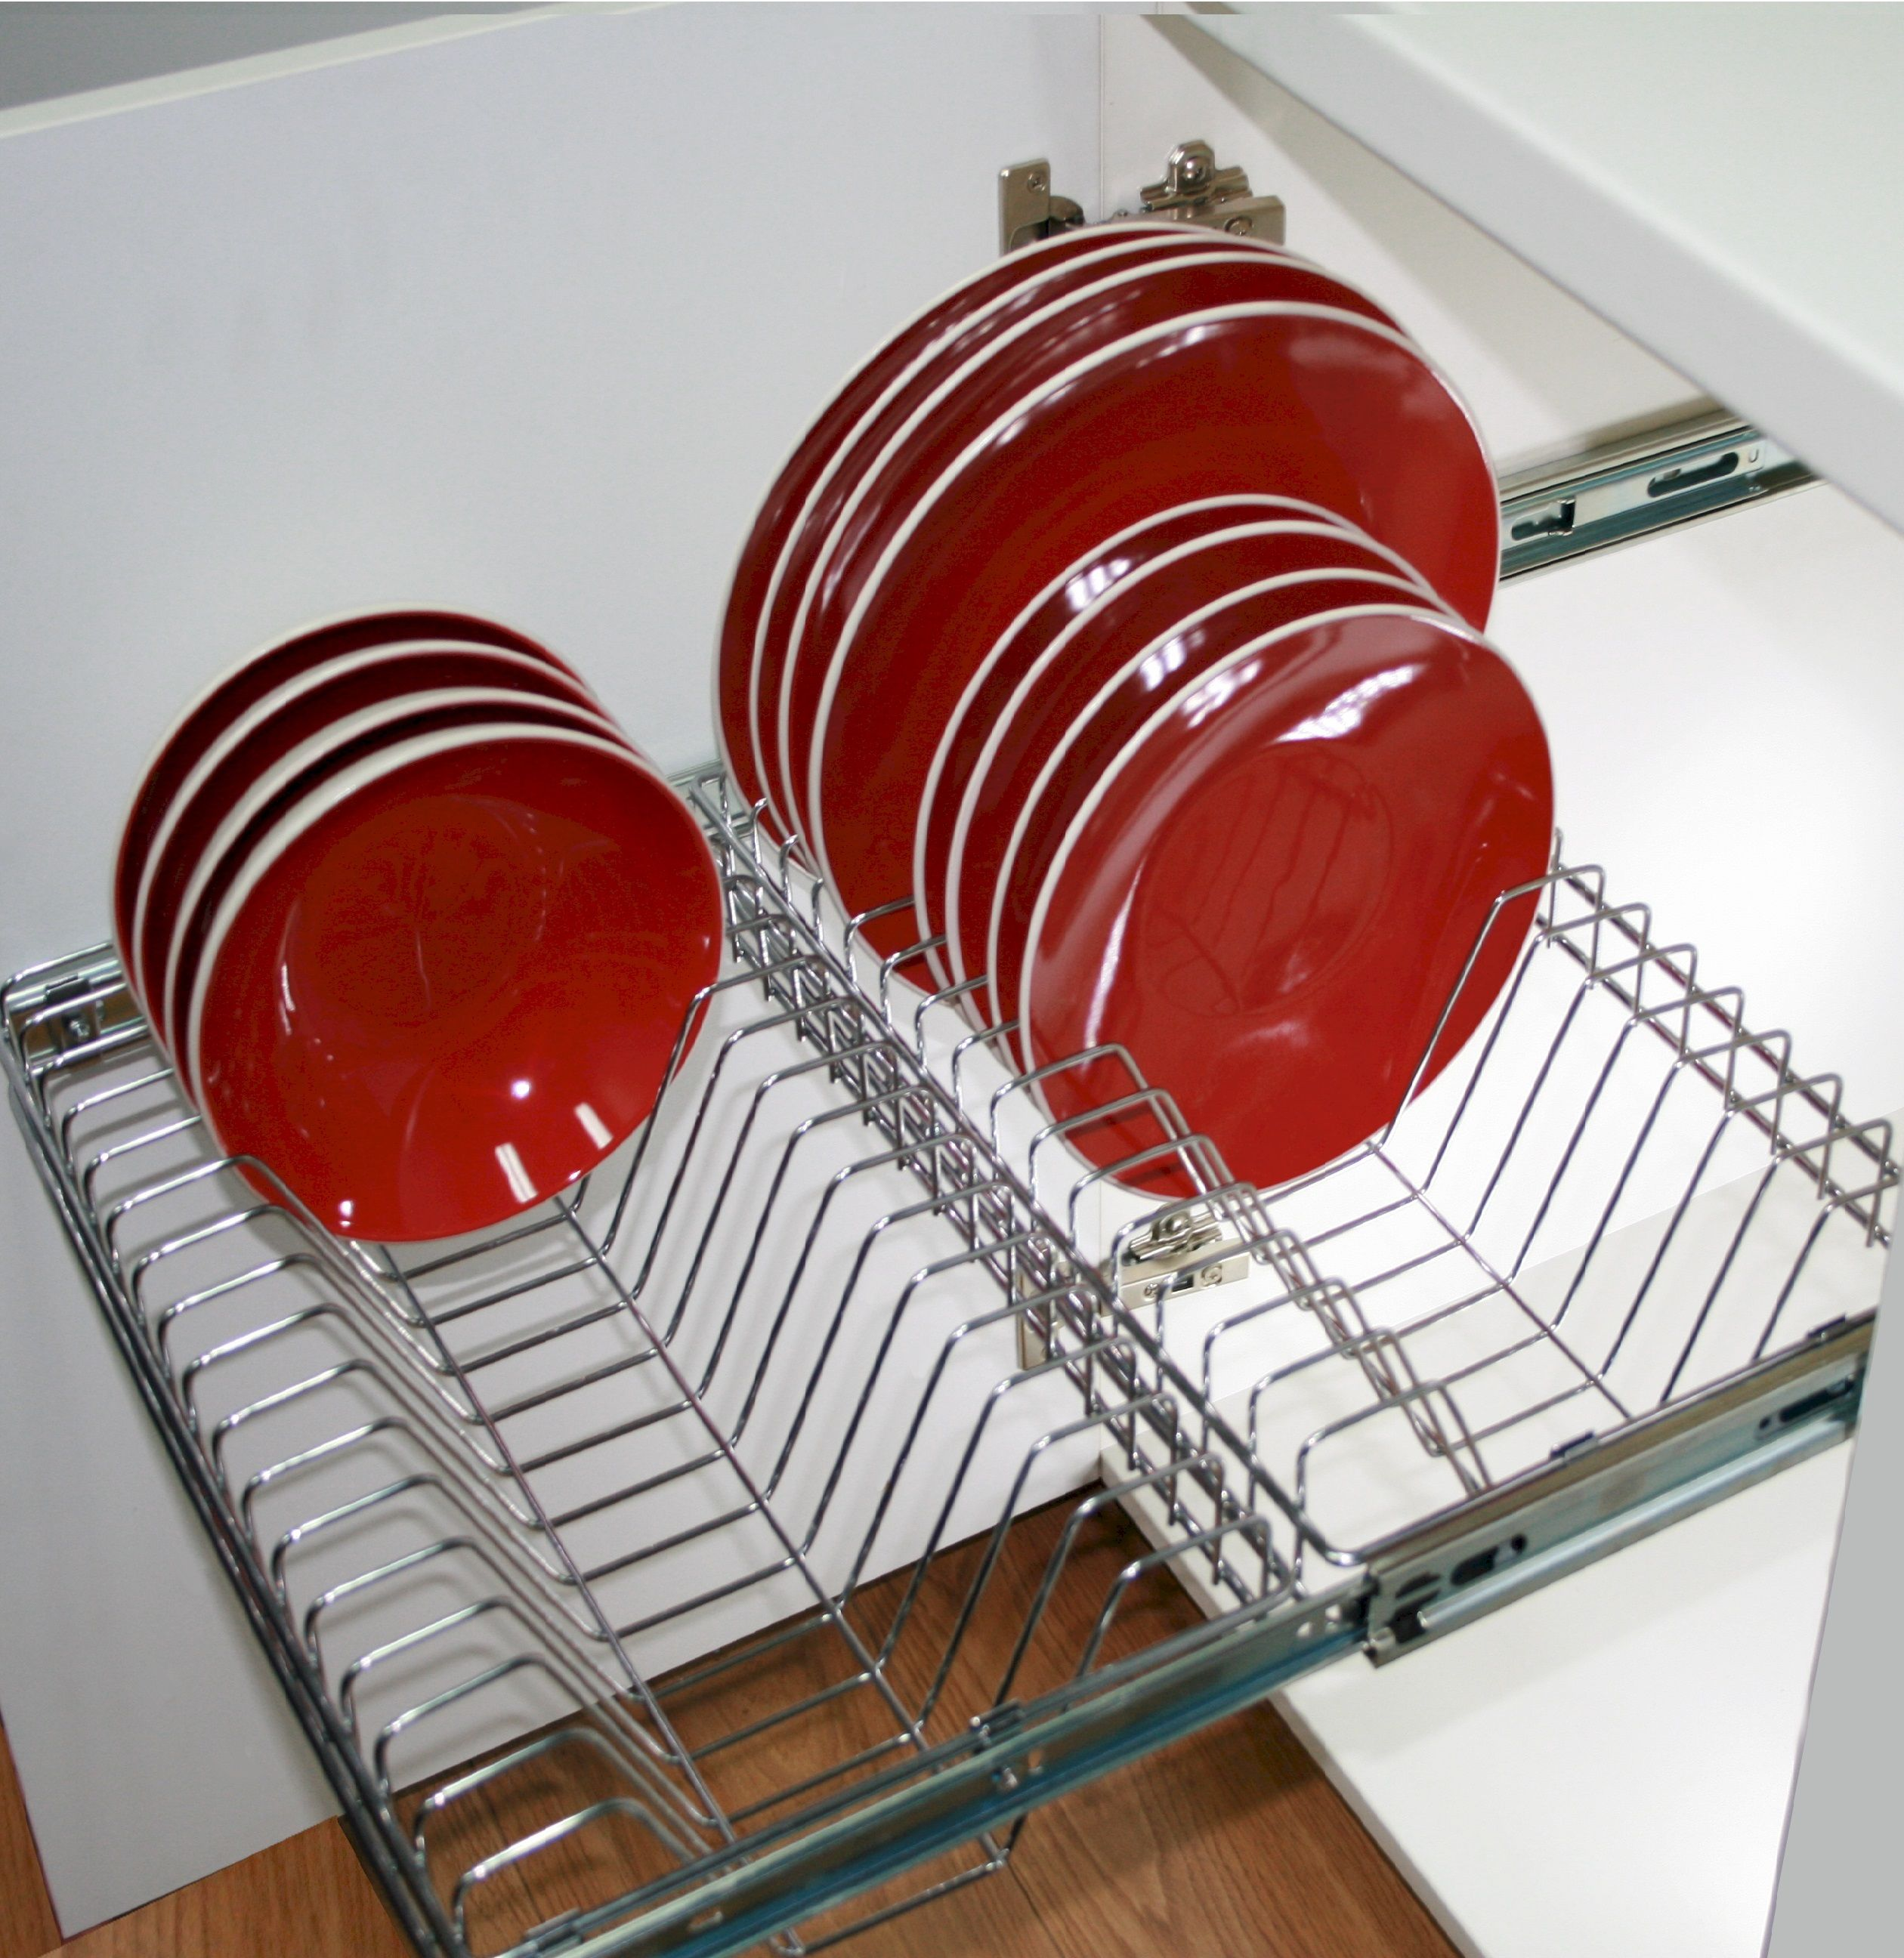 Stainless Steel Wire Pull Out Plate Rack Kitchen Furniture Storage Plate Storage Plate Racks